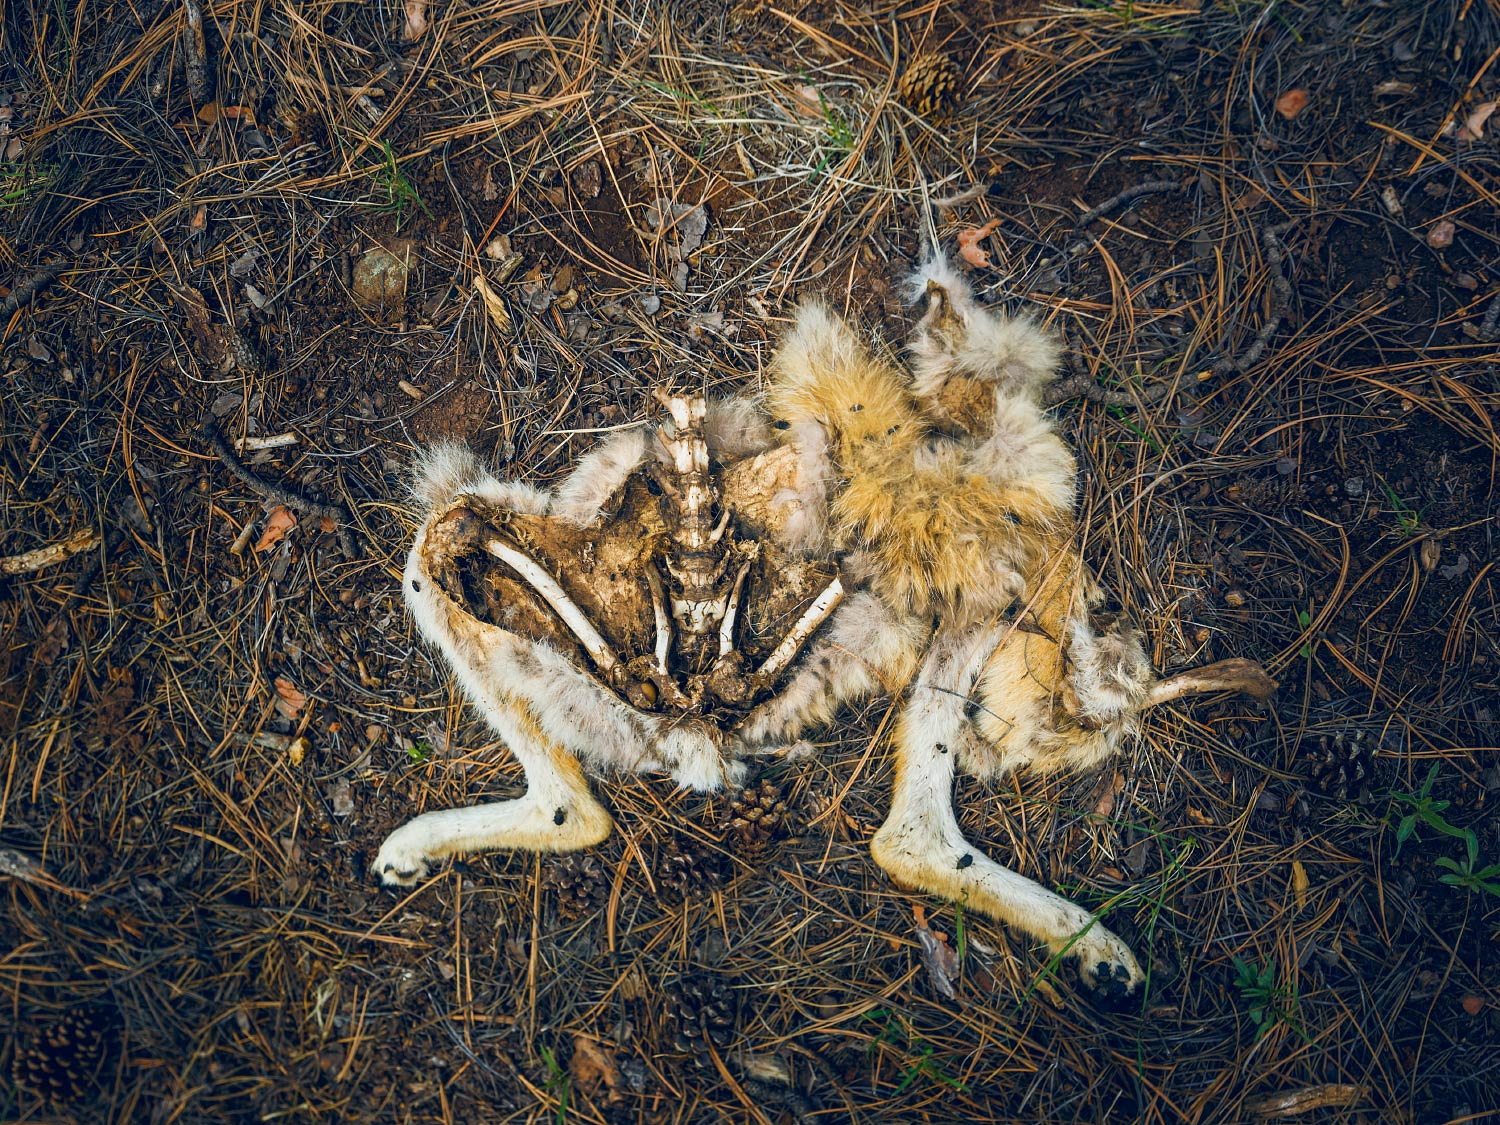 Dead coyote carcass